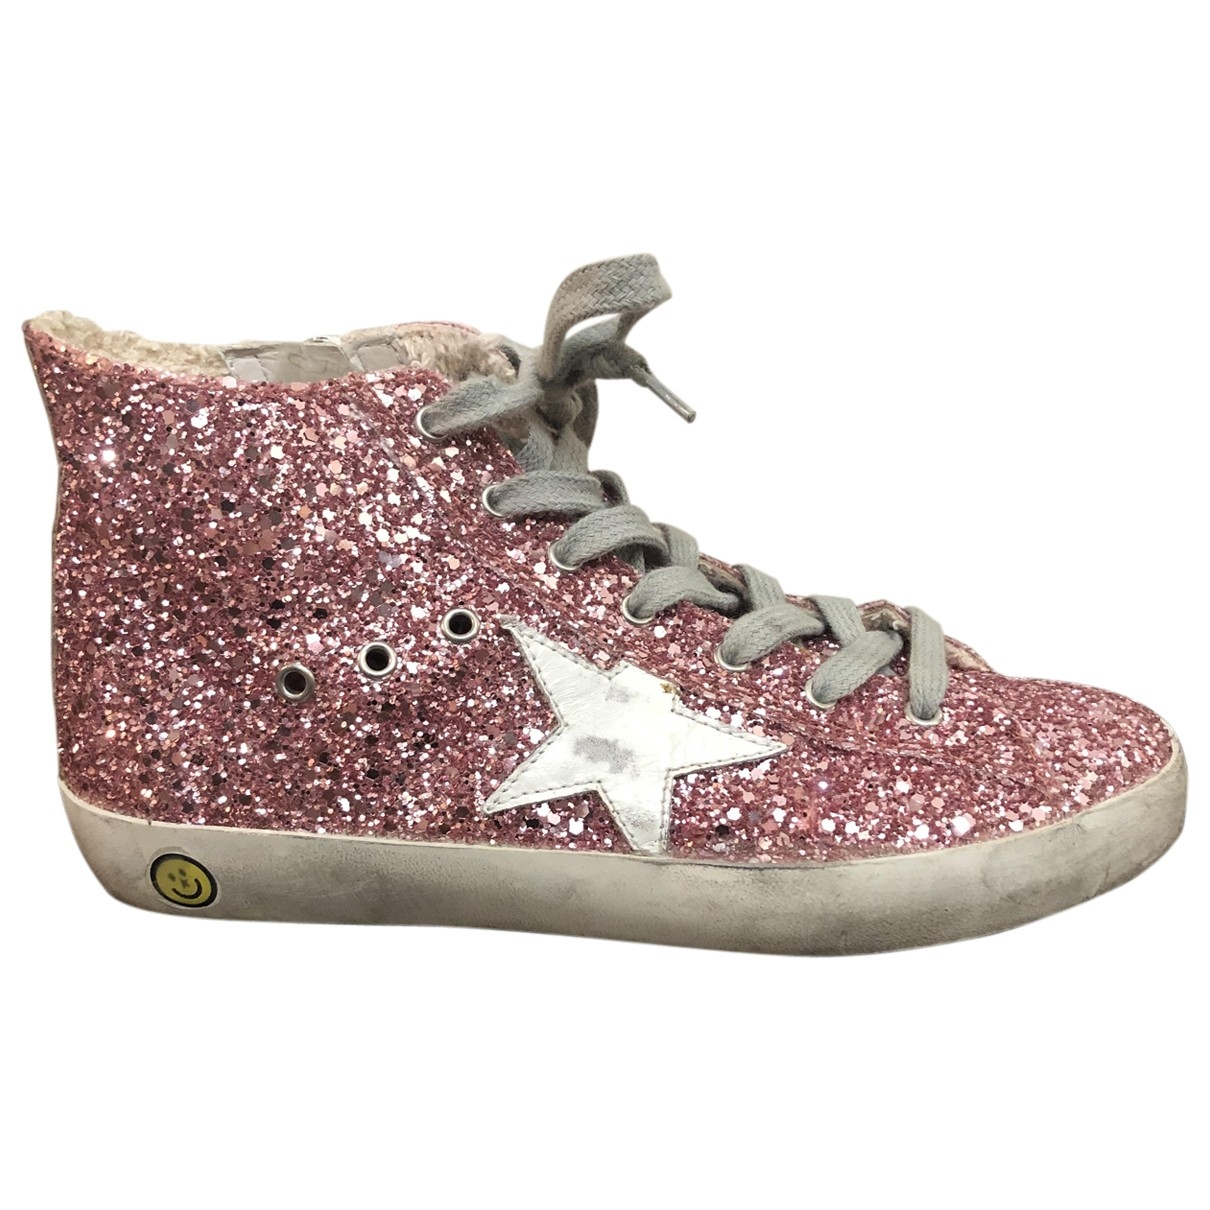 Golden Goose - Baskets Francy pour enfant en a paillettes - rose